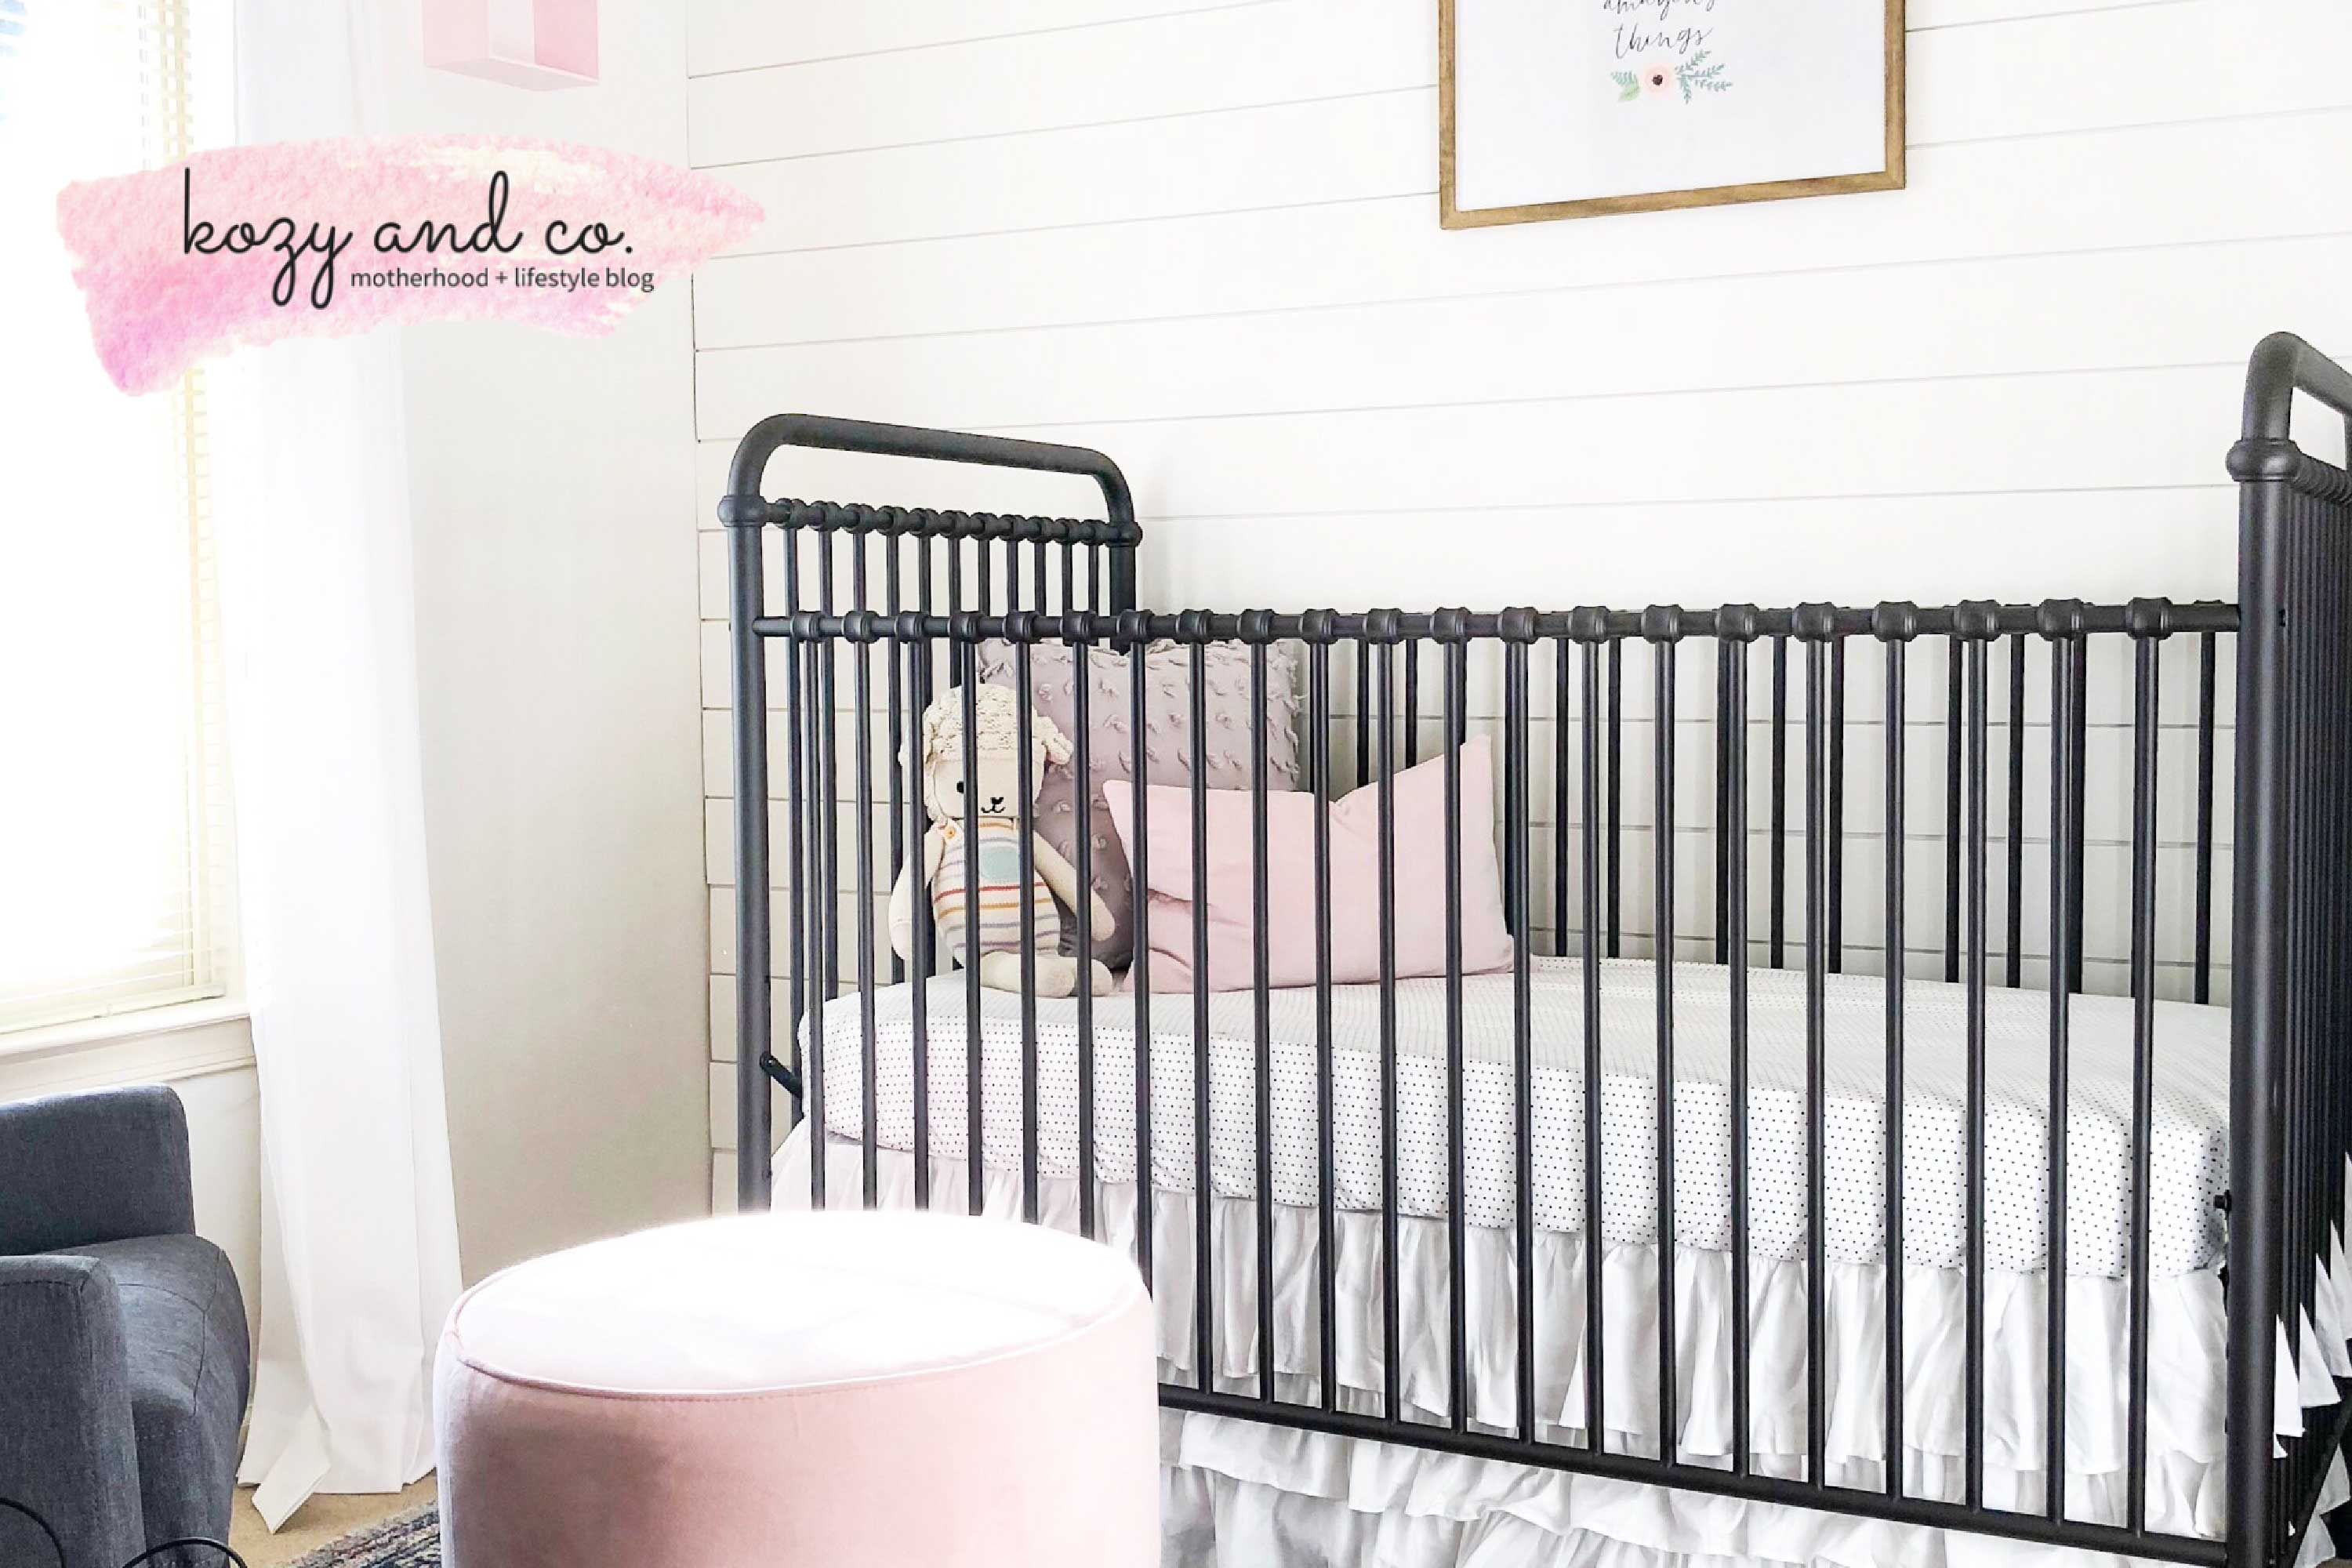 kozy and co, abigail 4-in-1 crib